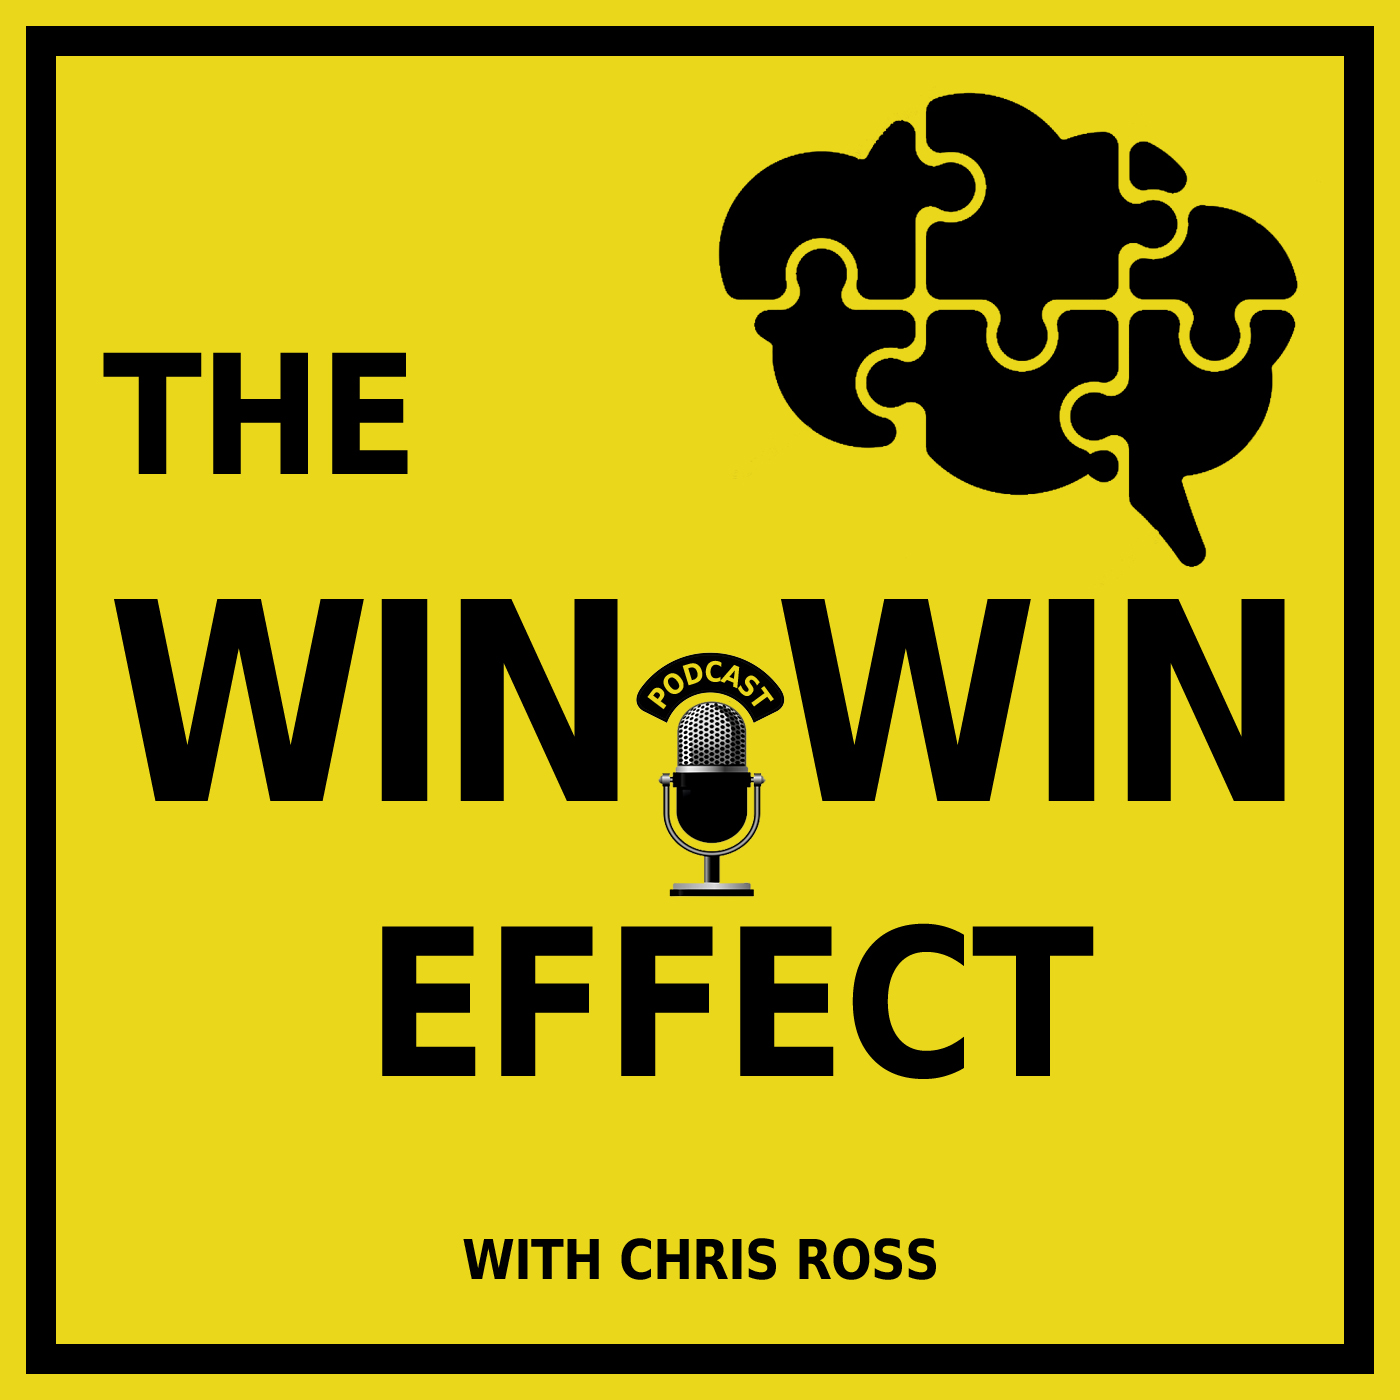 The Win-Win Effect